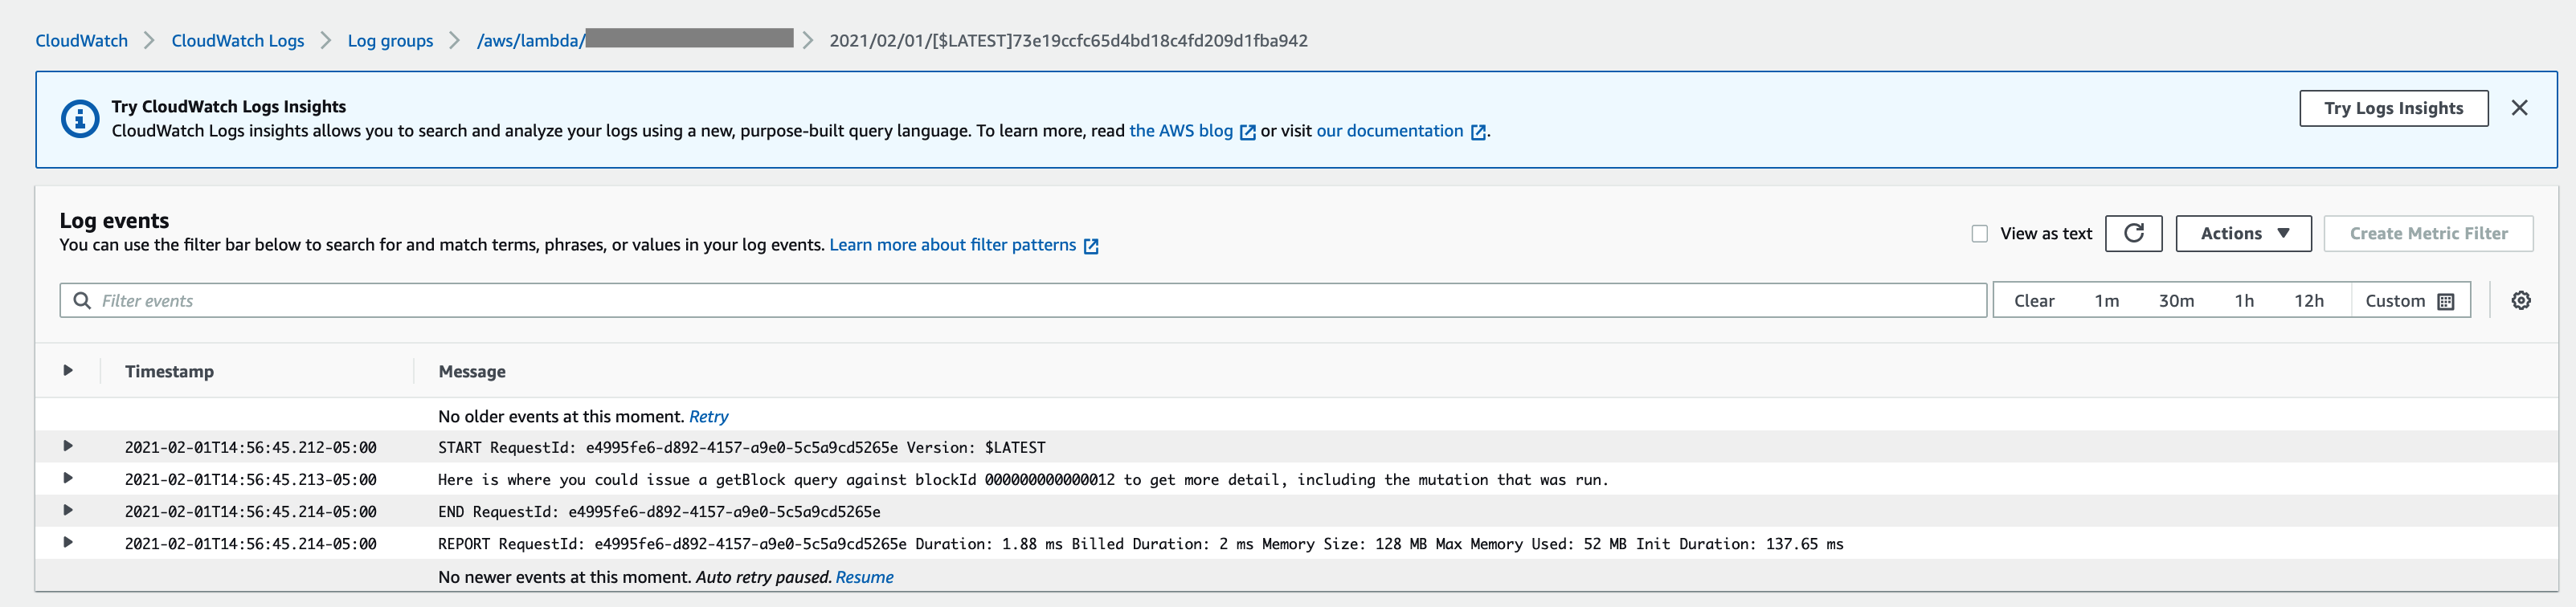 CloudWatch Log Entry When New Item Added